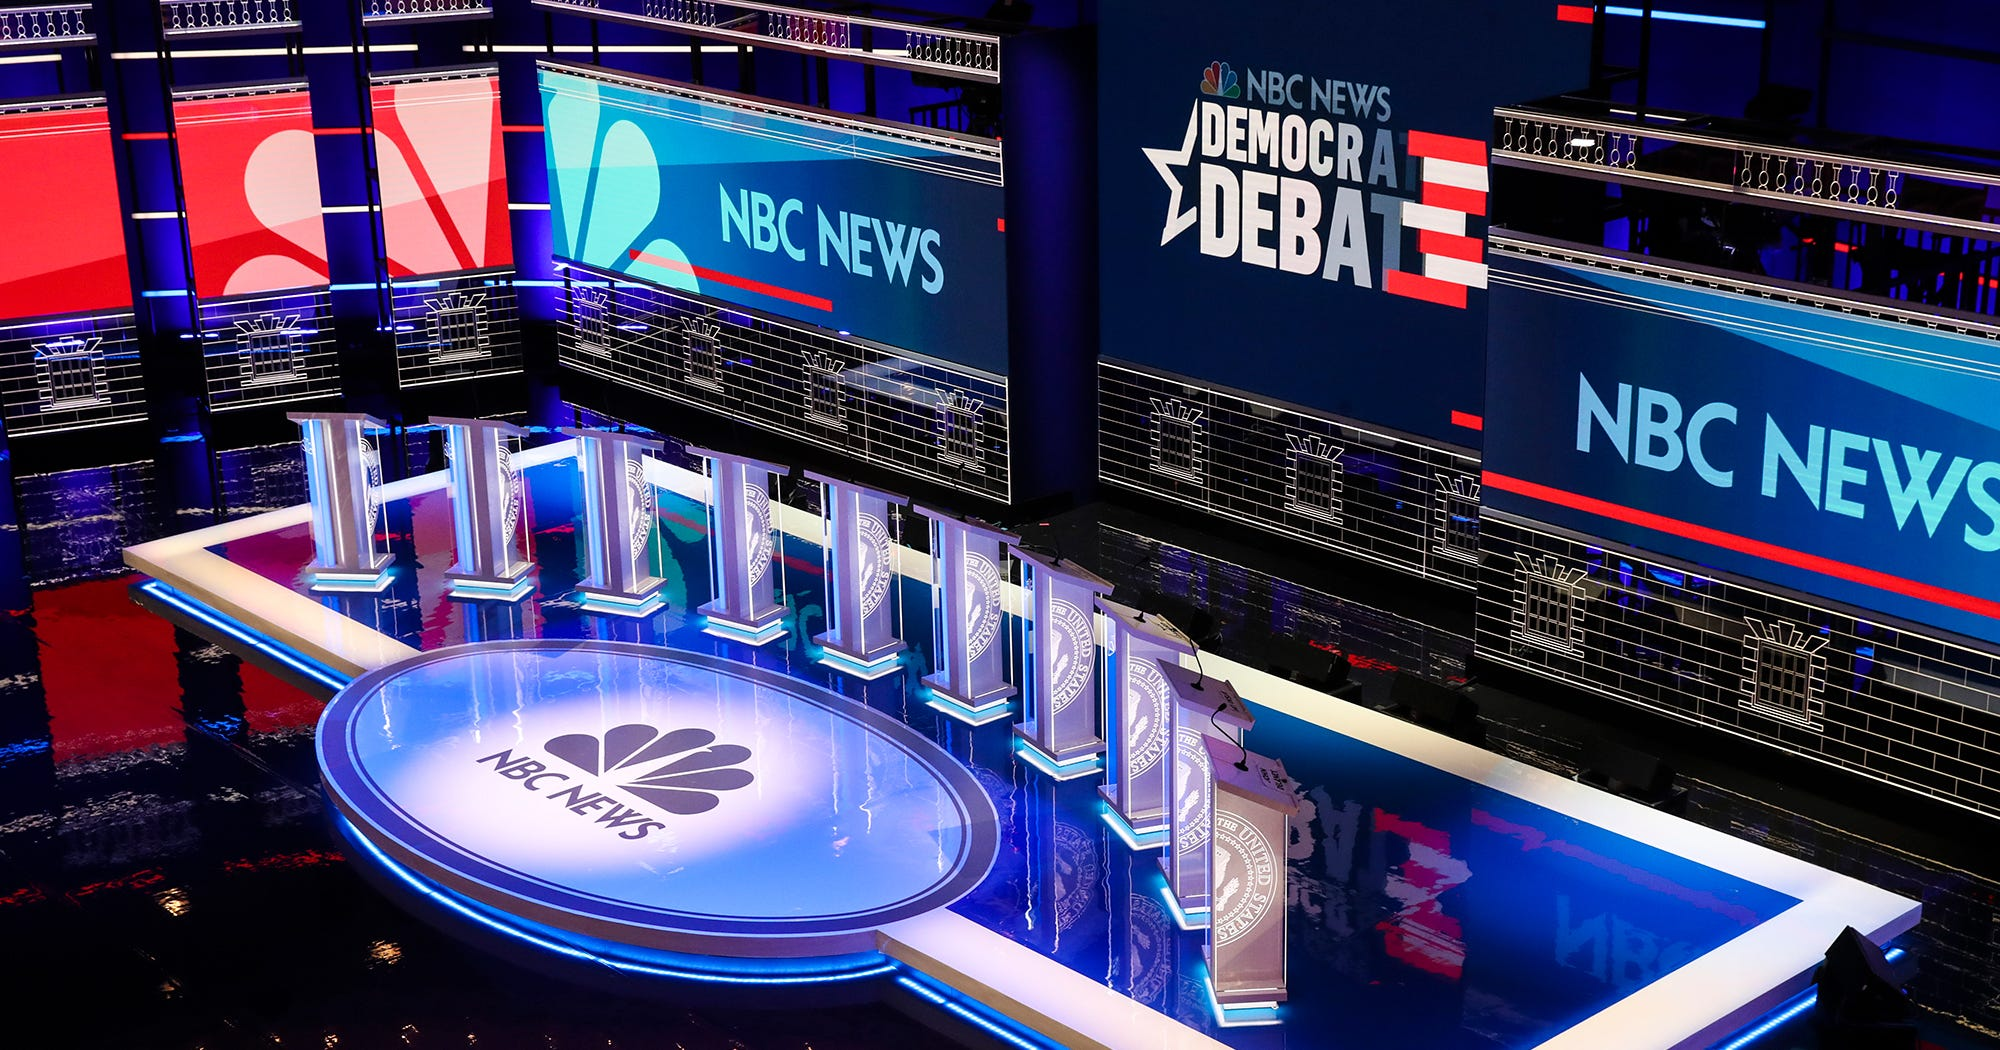 How To Watch Democratic Debate: Time, Channels, Stream